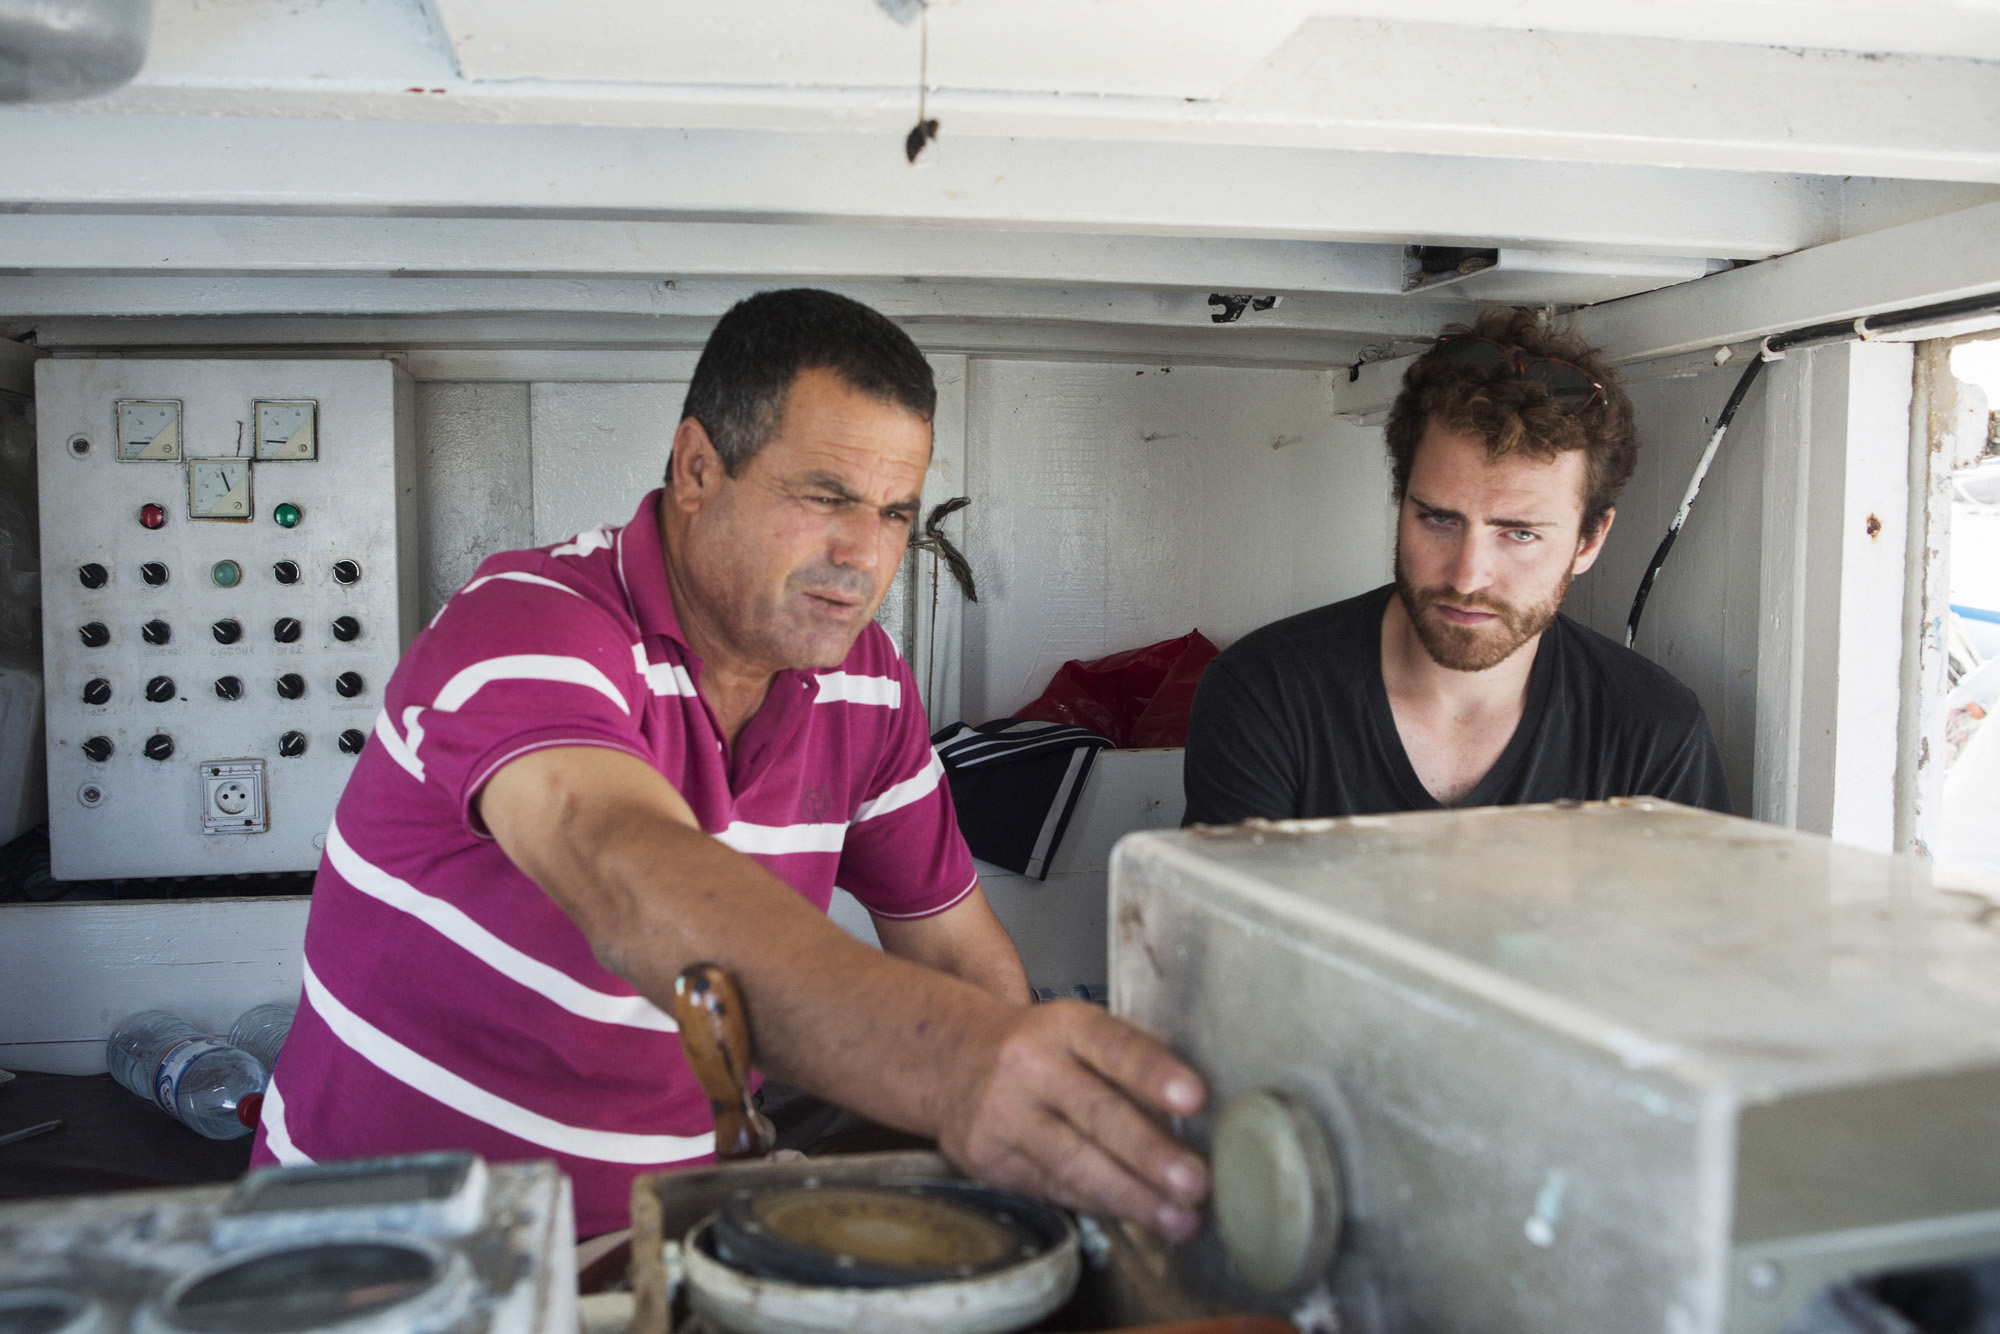 KRATEN, KERKENNAH ISLANDS, TUNISIA - 22 OCTOBER 2015: (L-R) Fisherman Hedi Khecherem, 50, shows Eric Reidy the migrant routes from Libya and Tunisia towards to Italy on his GPS on his boat in Kraten, Kerkennah Islands, Tunisia, on October 22nd 2015.